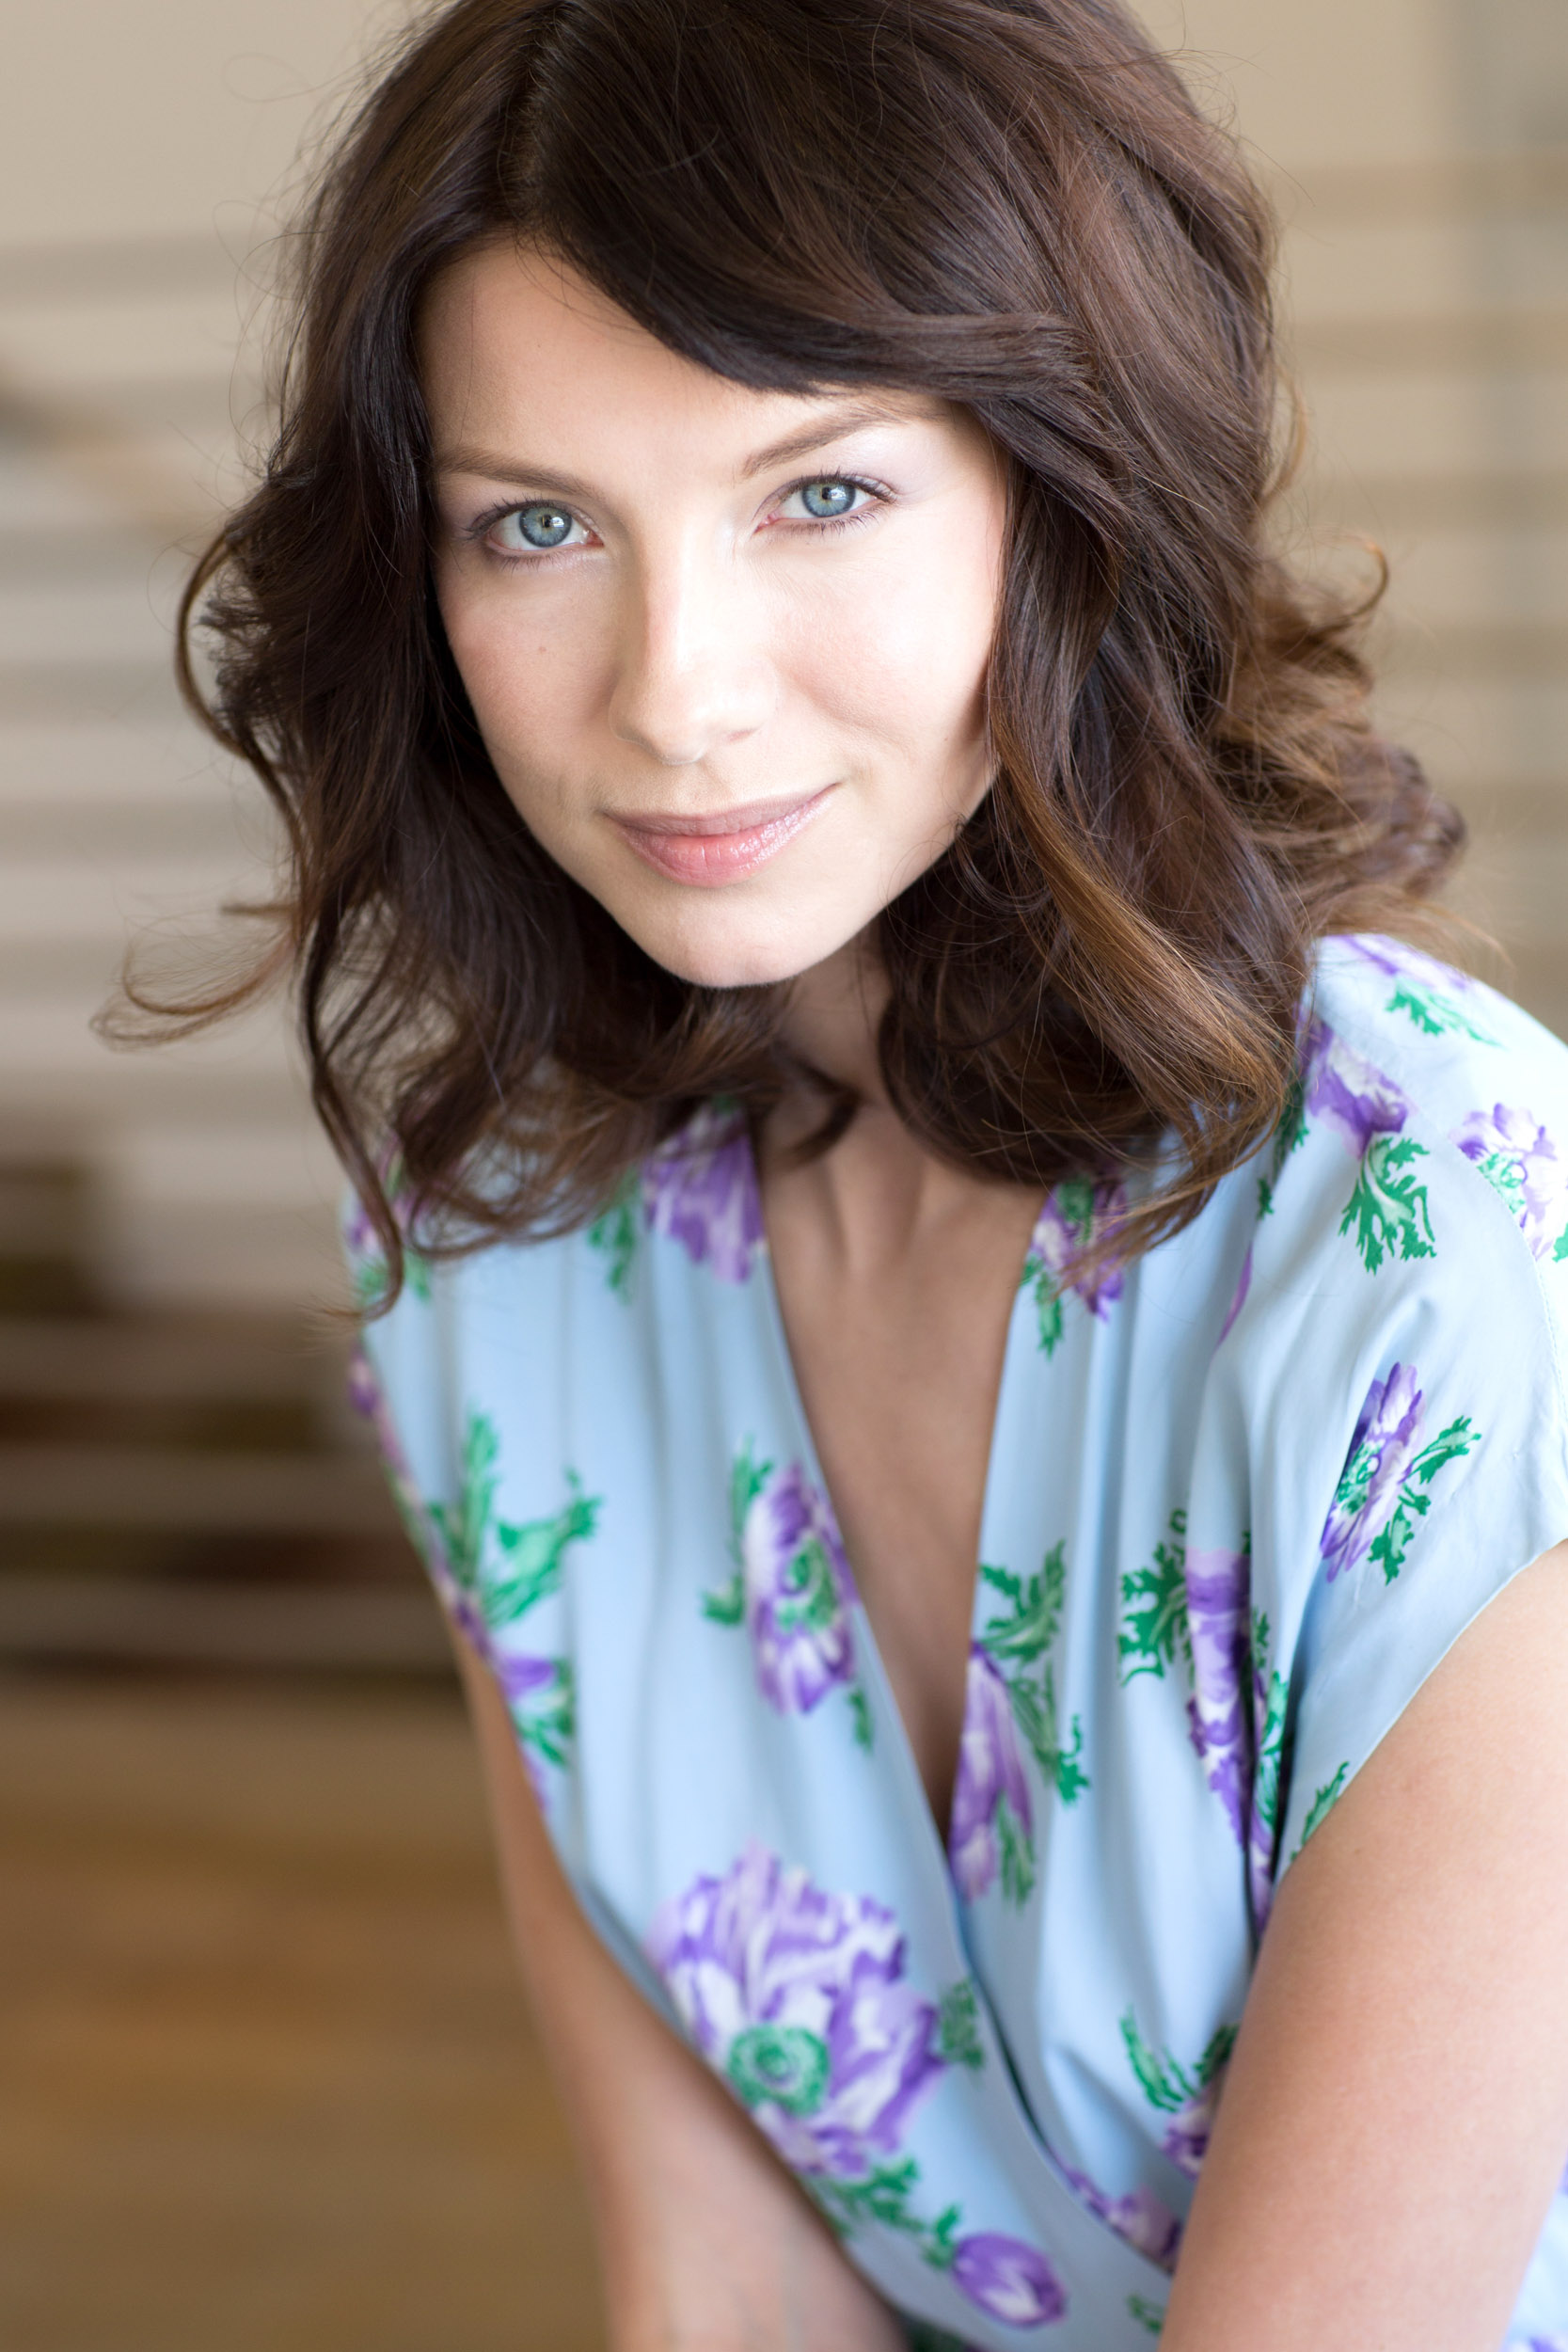 caitriona balfe outlandercaitriona balfe and sam heughan relationship, caitriona balfe height, caitriona balfe vk, caitriona balfe gif, caitriona balfe weight and height, caitriona balfe photoshoot, caitriona balfe outlander, caitriona balfe married, caitriona balfe instagram, caitriona balfe facebook, caitriona balfe dates, caitriona balfe film, caitriona balfe paparazzi, caitriona balfe movies, caitriona balfe fansite, caitriona balfe and tony mcgill, caitriona balfe in golden globes 2017, caitriona balfe laughing, caitriona balfe insta, caitriona balfe fashion spot